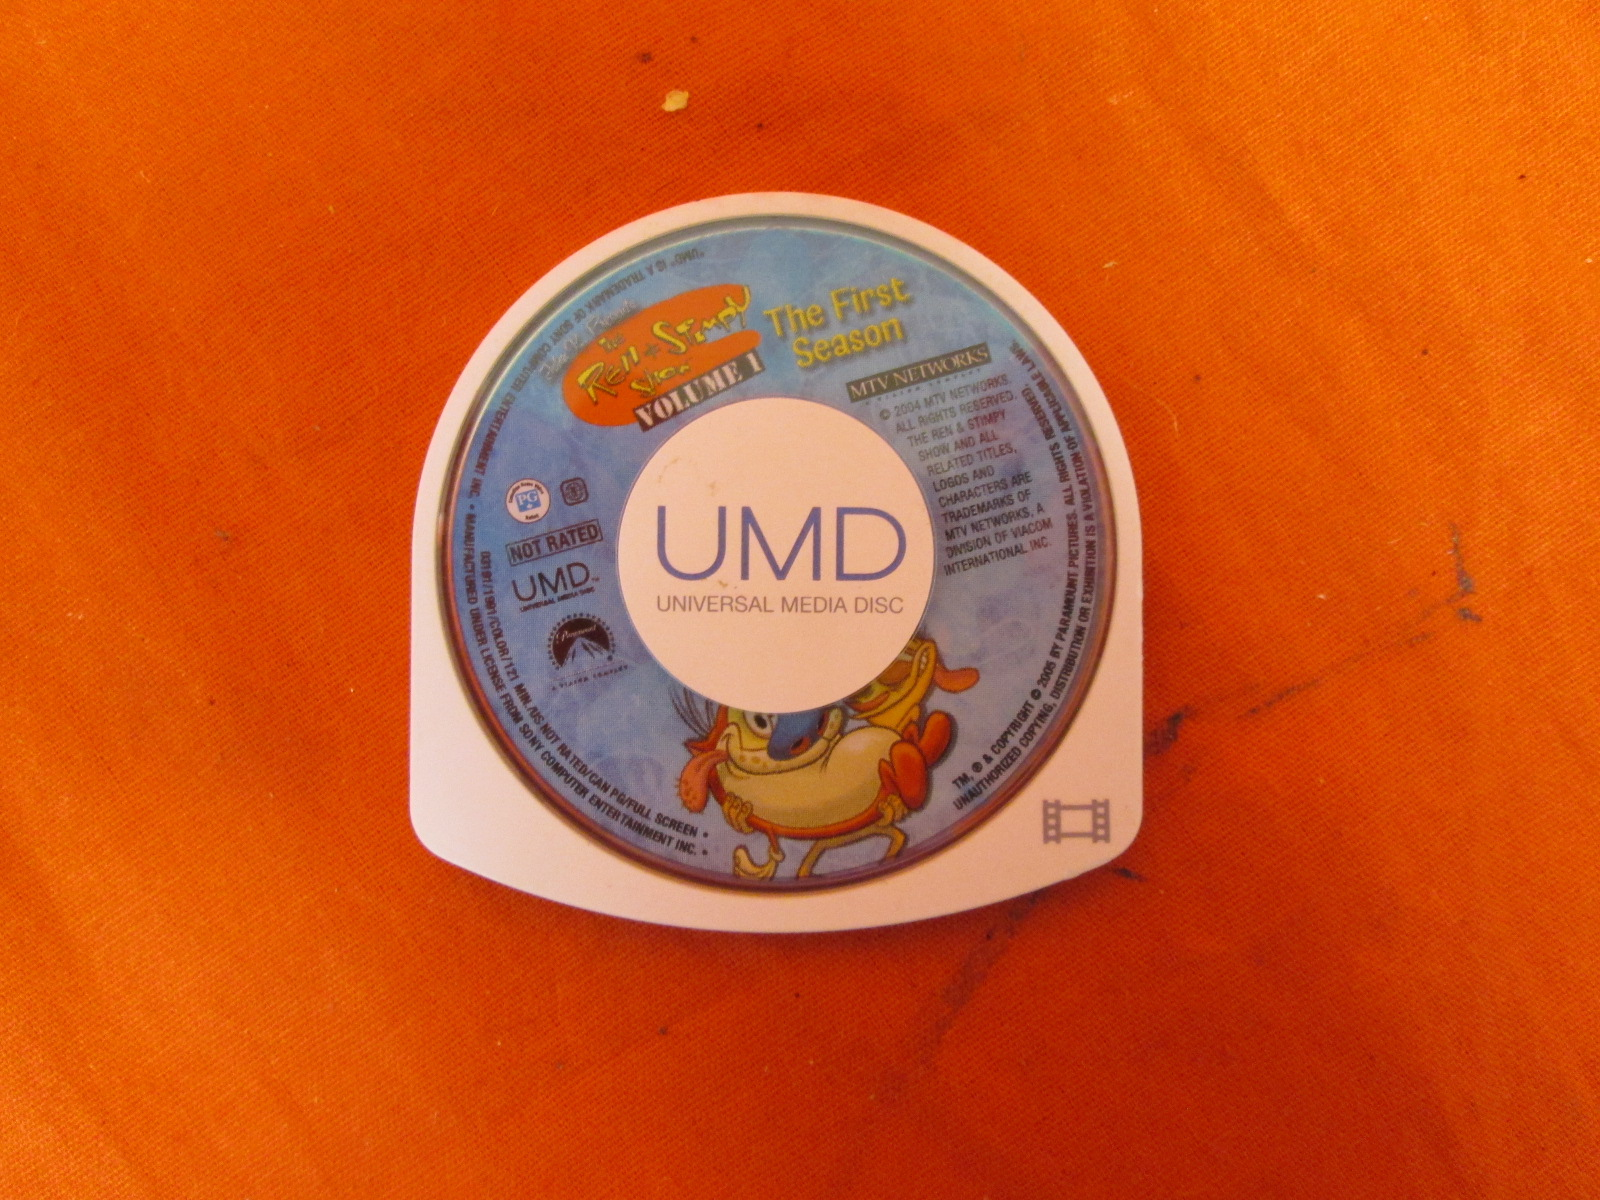 Ren & Stimpy The First And Second Seasons Vol 1 UMD For PSP